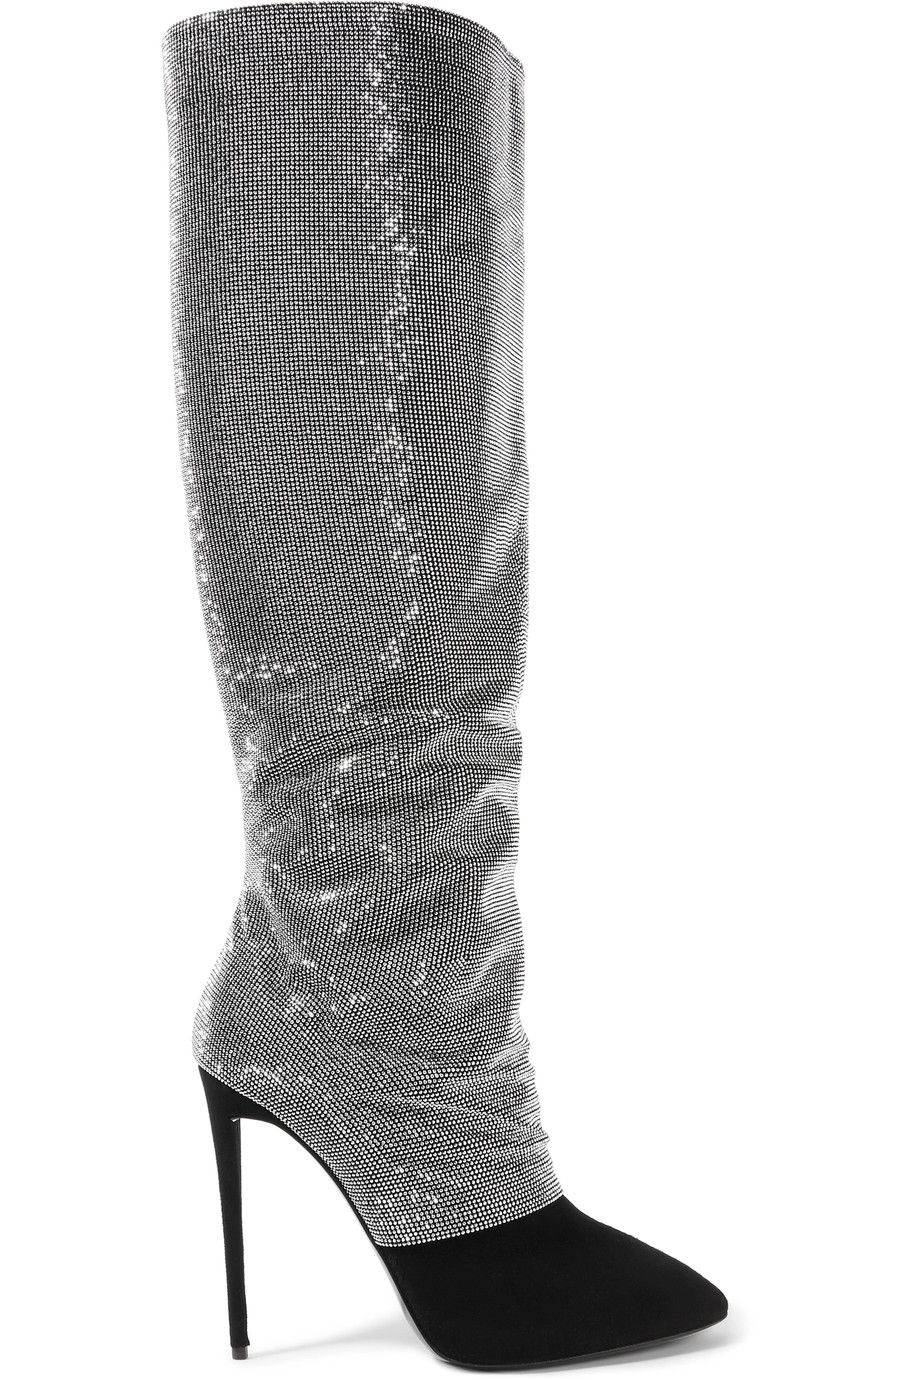 Giuseppe Zanotti Embellished Over-The-Knee Boots clearance from china from china cheap price best sale for sale clearance cheap real pay with visa cheap price k8NJNDBi7T